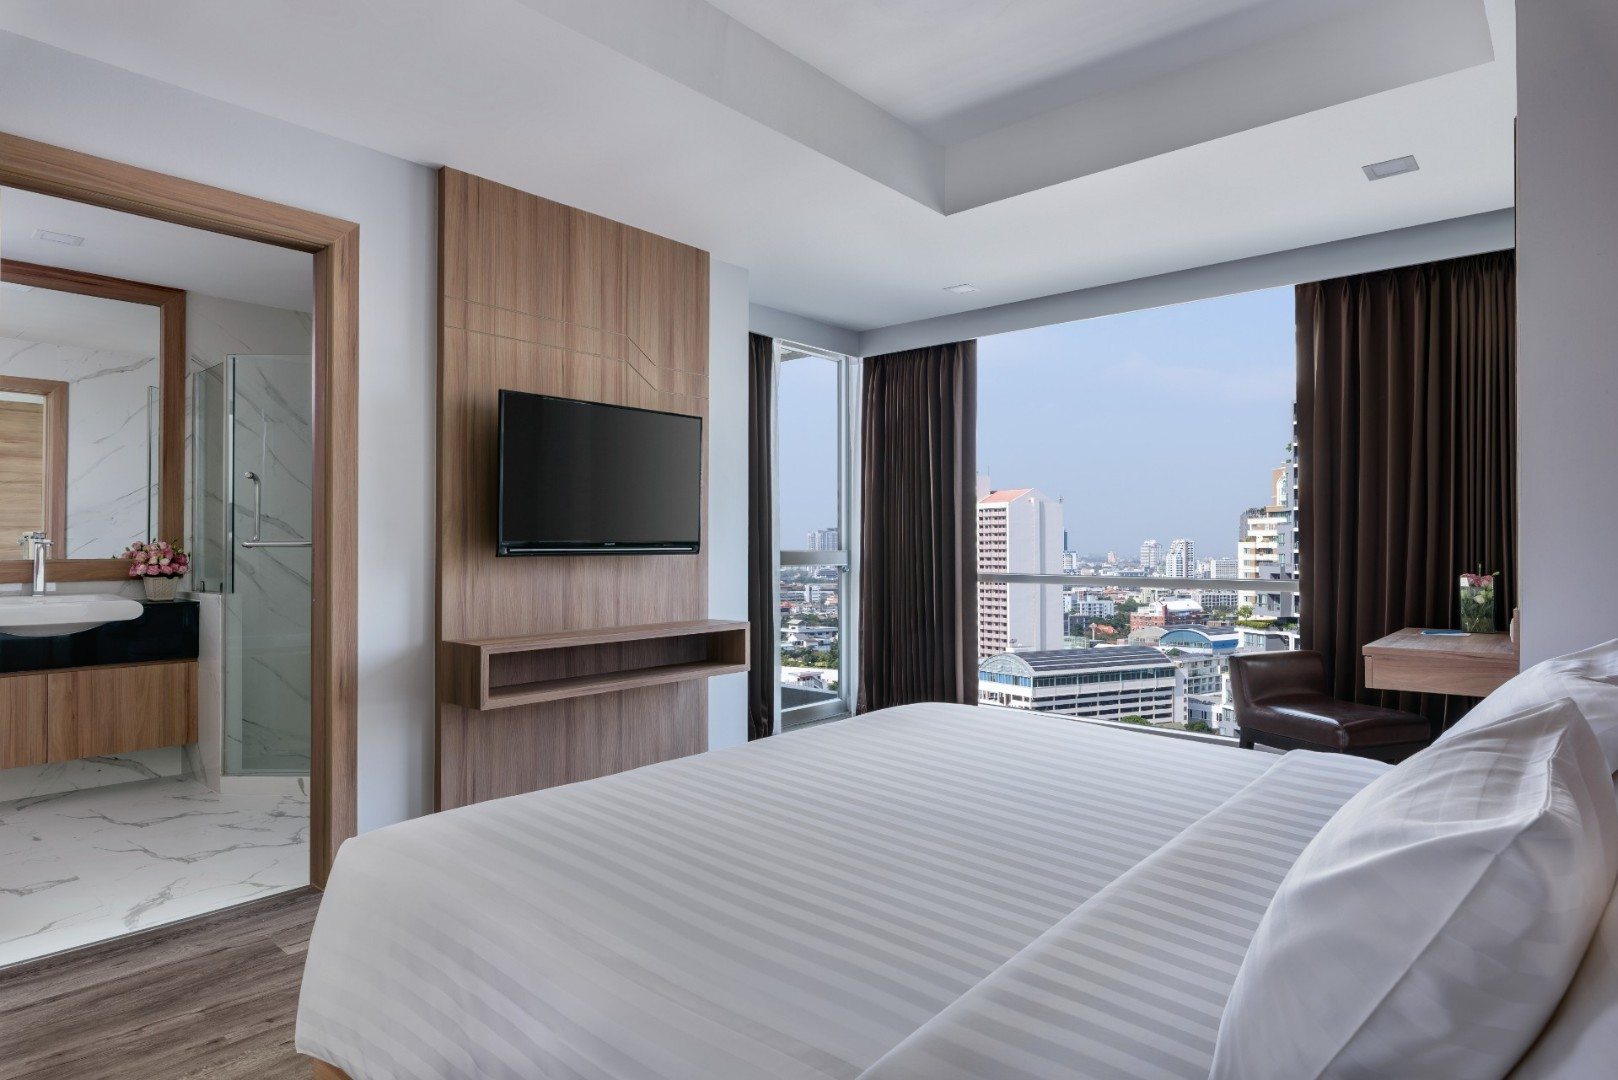 Adelphi Grande Sukhumvit Hotel - Executive One Bedroom Suite Bedroom-04.jpg